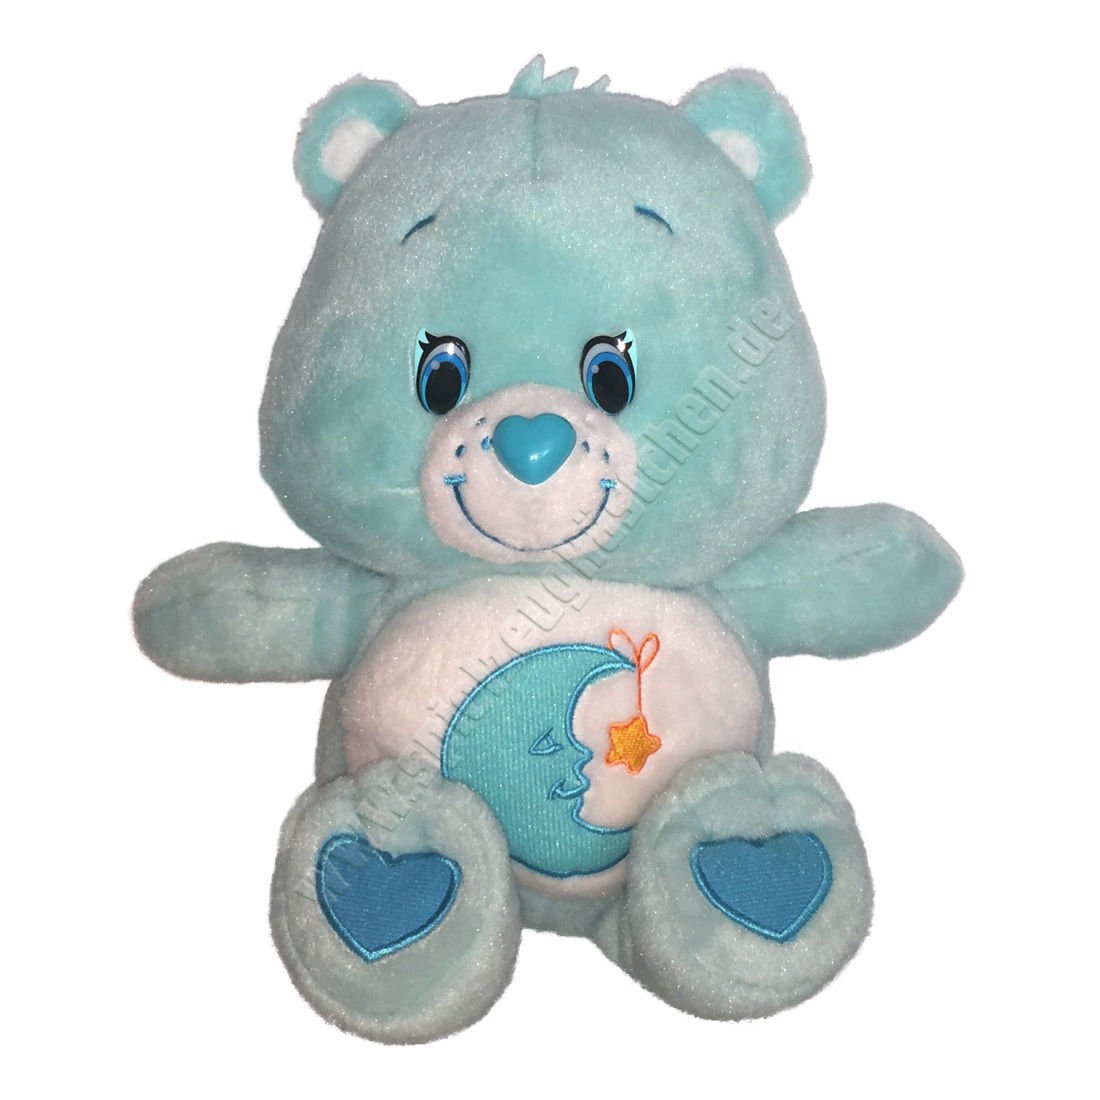 Vintage Care Bears Blue Bedtime Bear Plush Soft Toy 12"